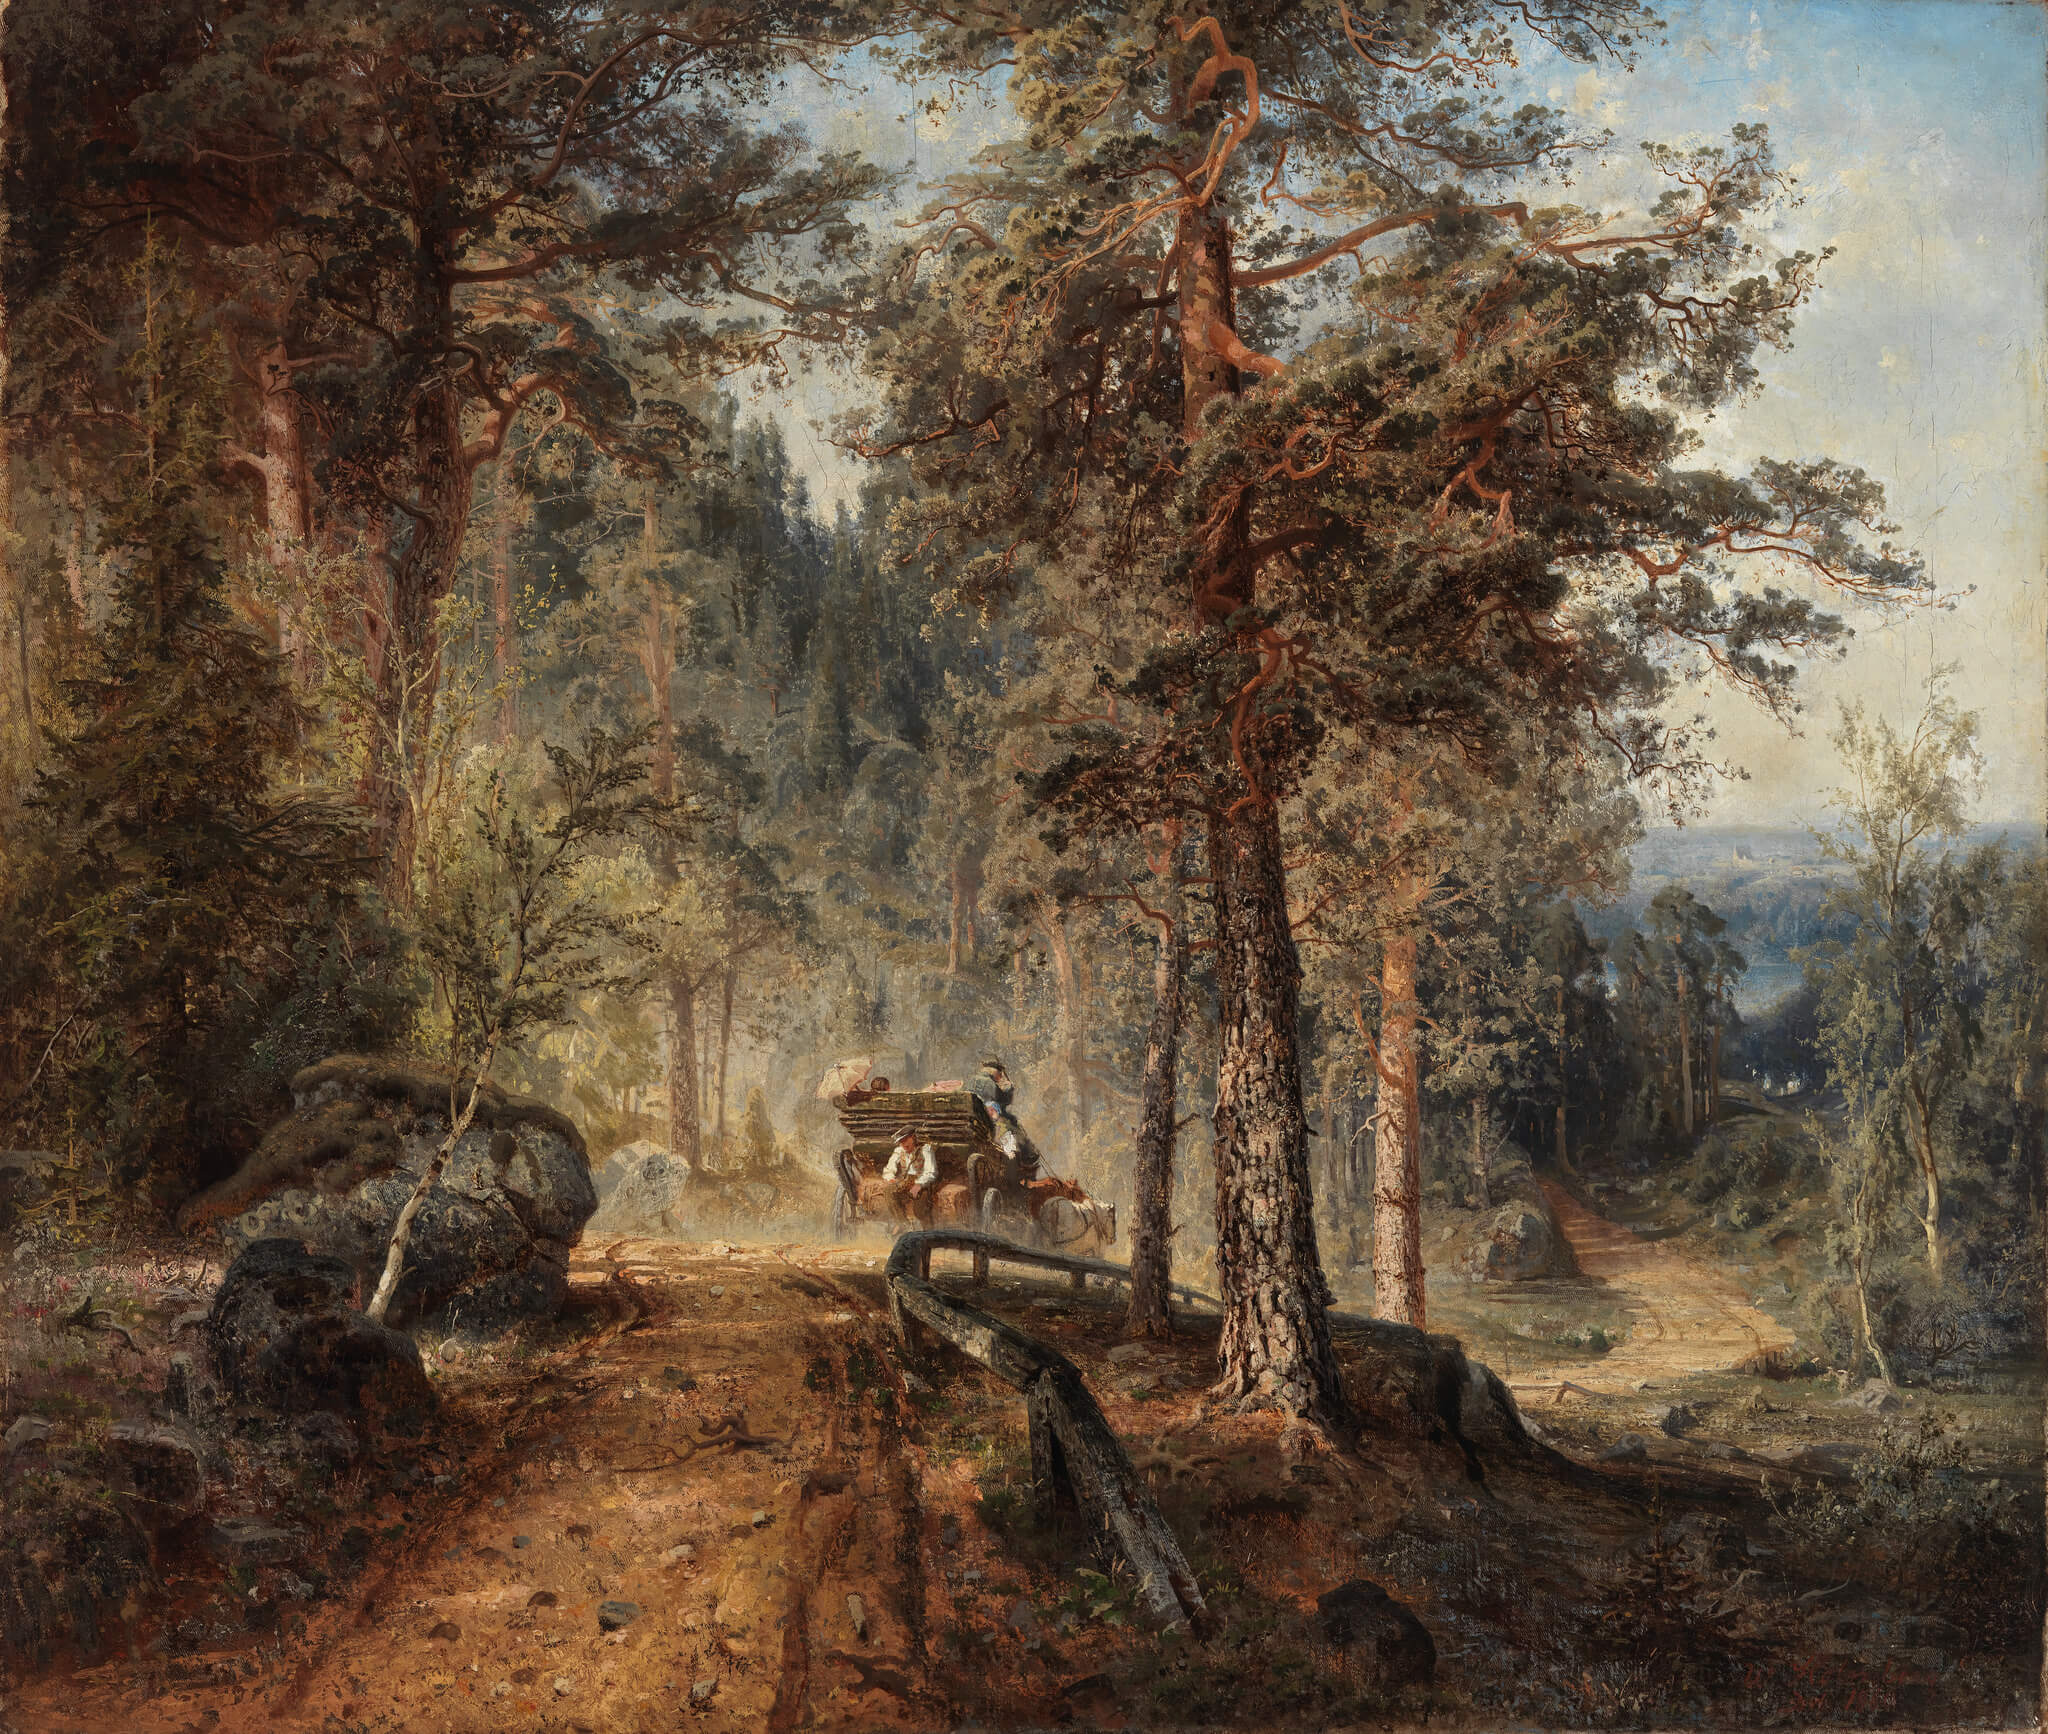 Artwork: Werner Holmberg: Road in Häme (A Hot Summer Day), 1860